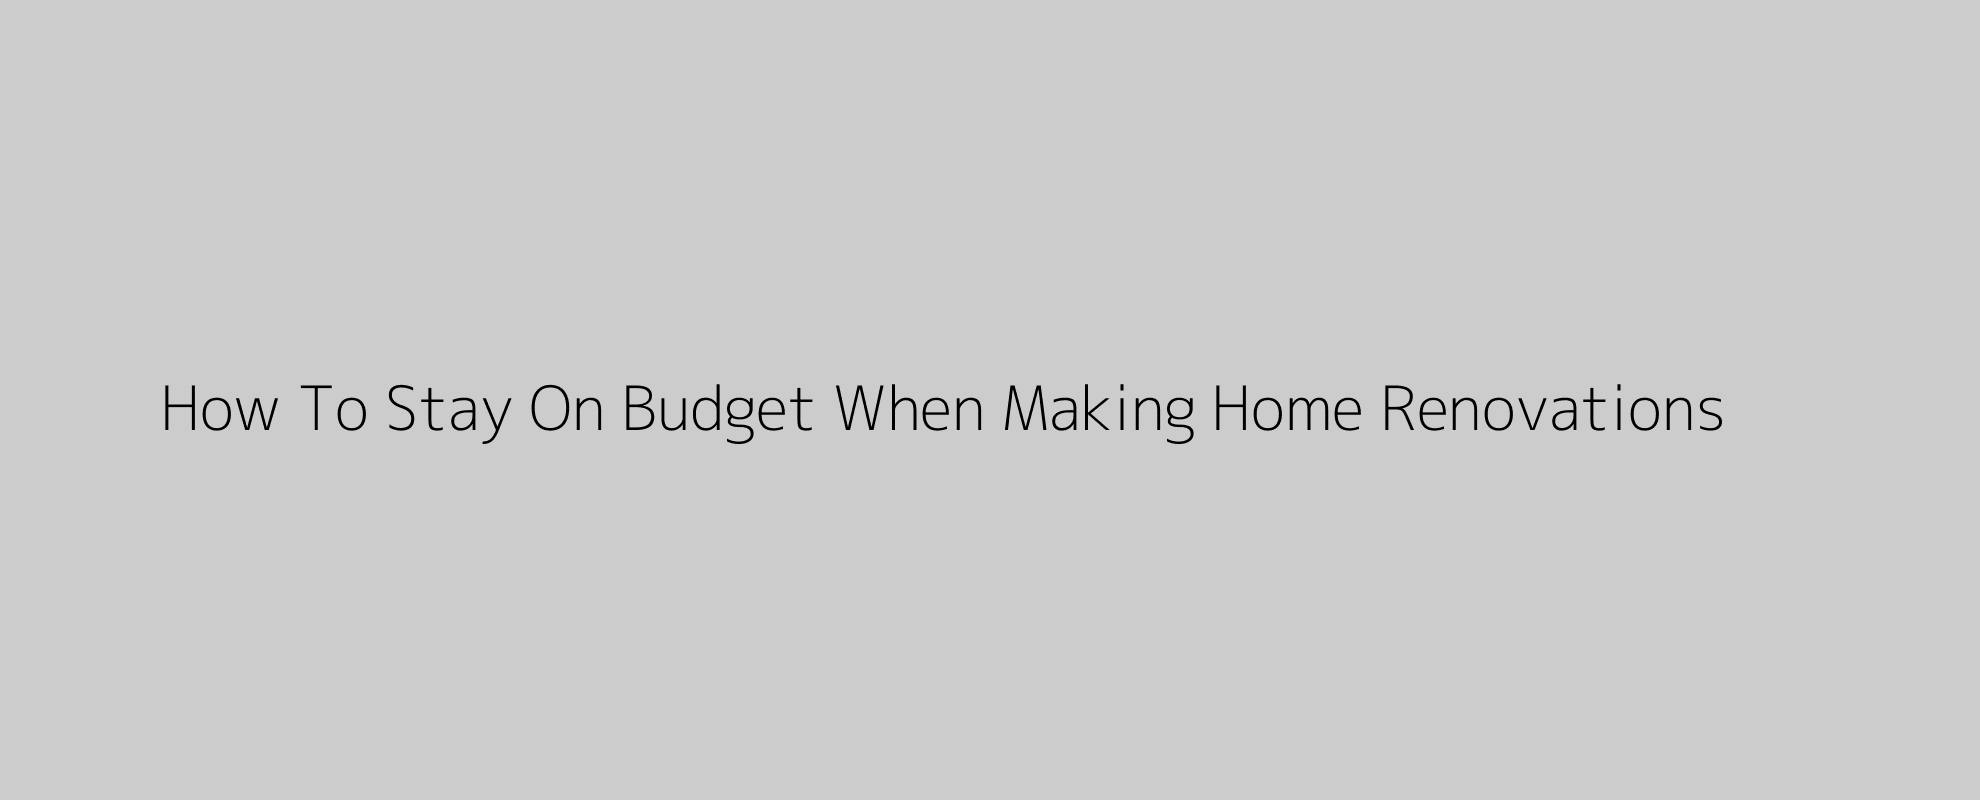 How To Stay On Budget When Making Home Renovations